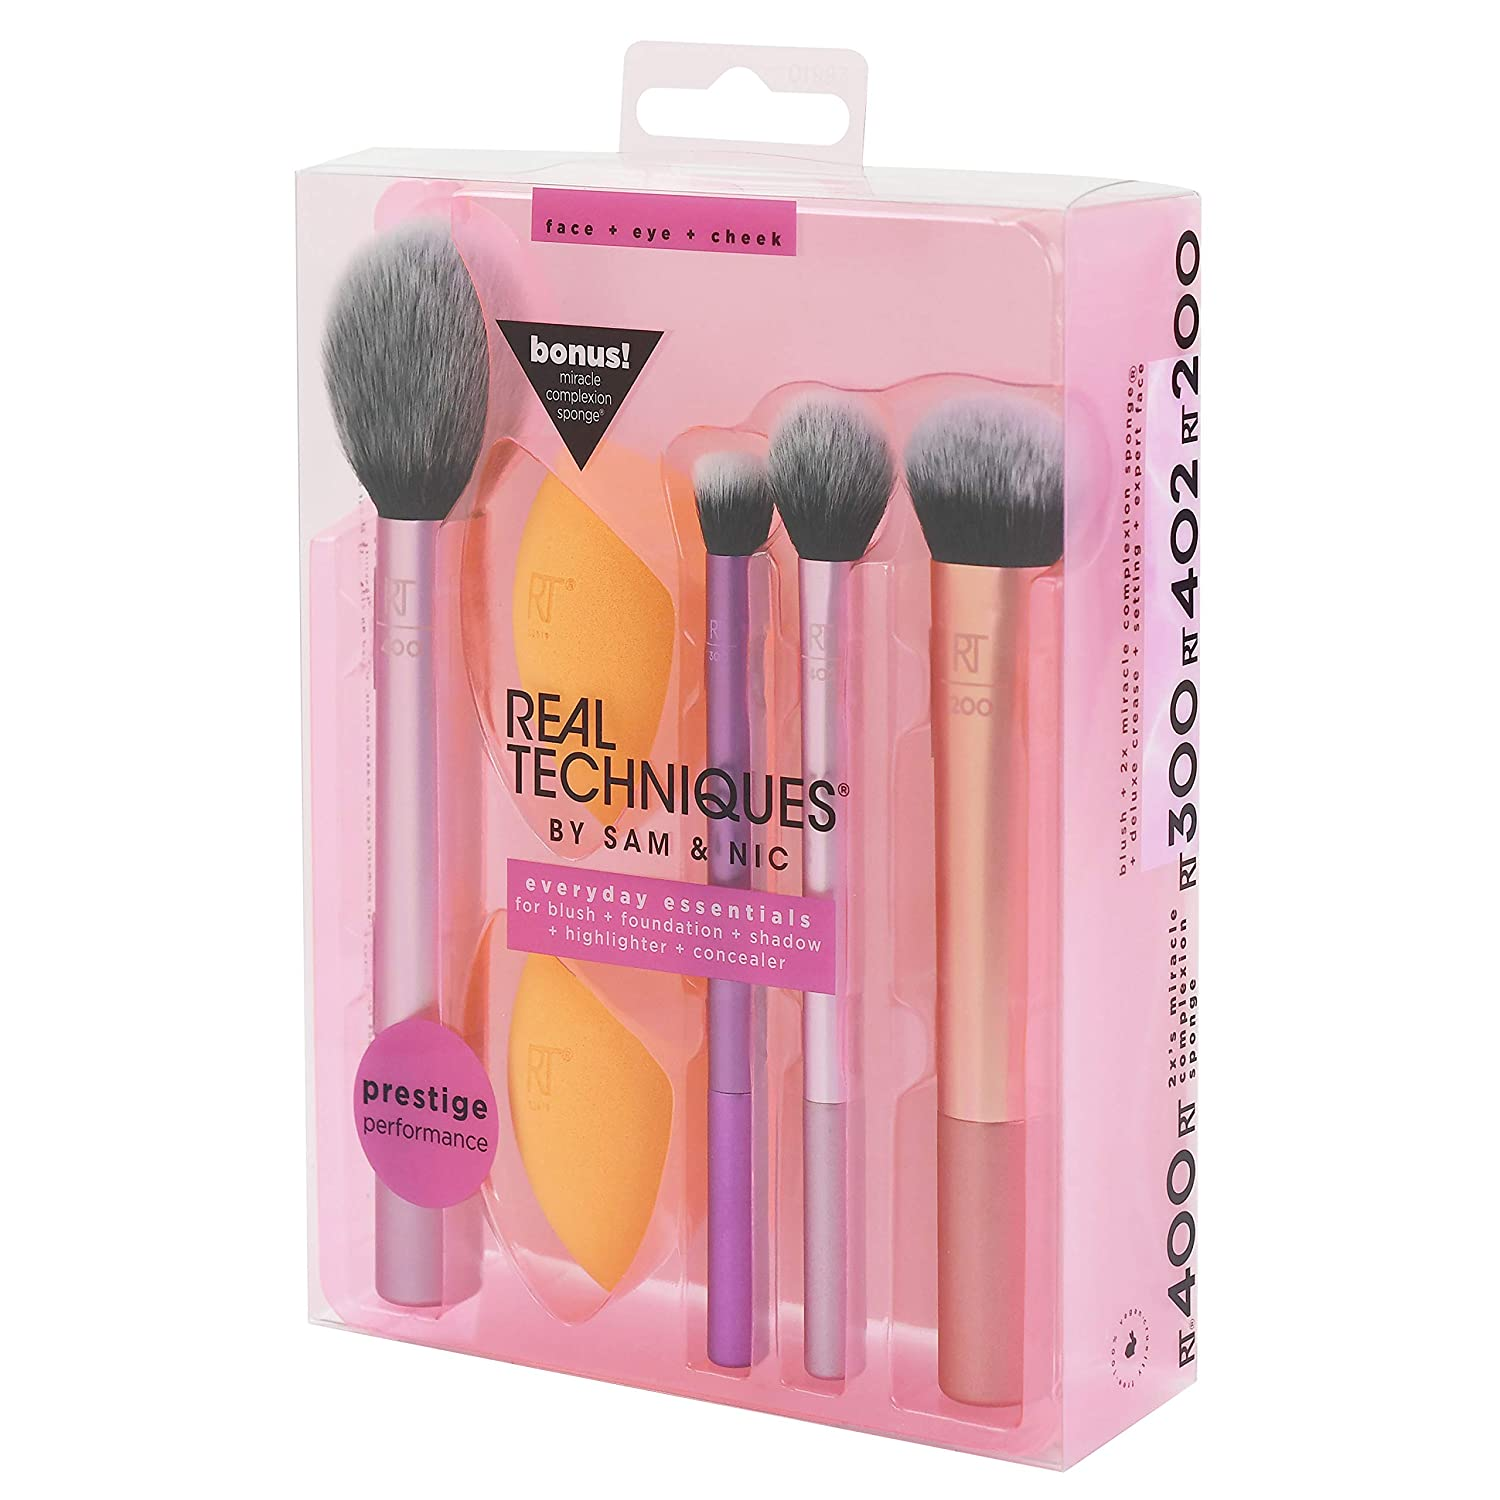 Real Techniques Makeup Brush Set with 2 Sponge Blenders for Eyeshadow, Foundation, Blush, and Concealer, Set of 6: Beauty